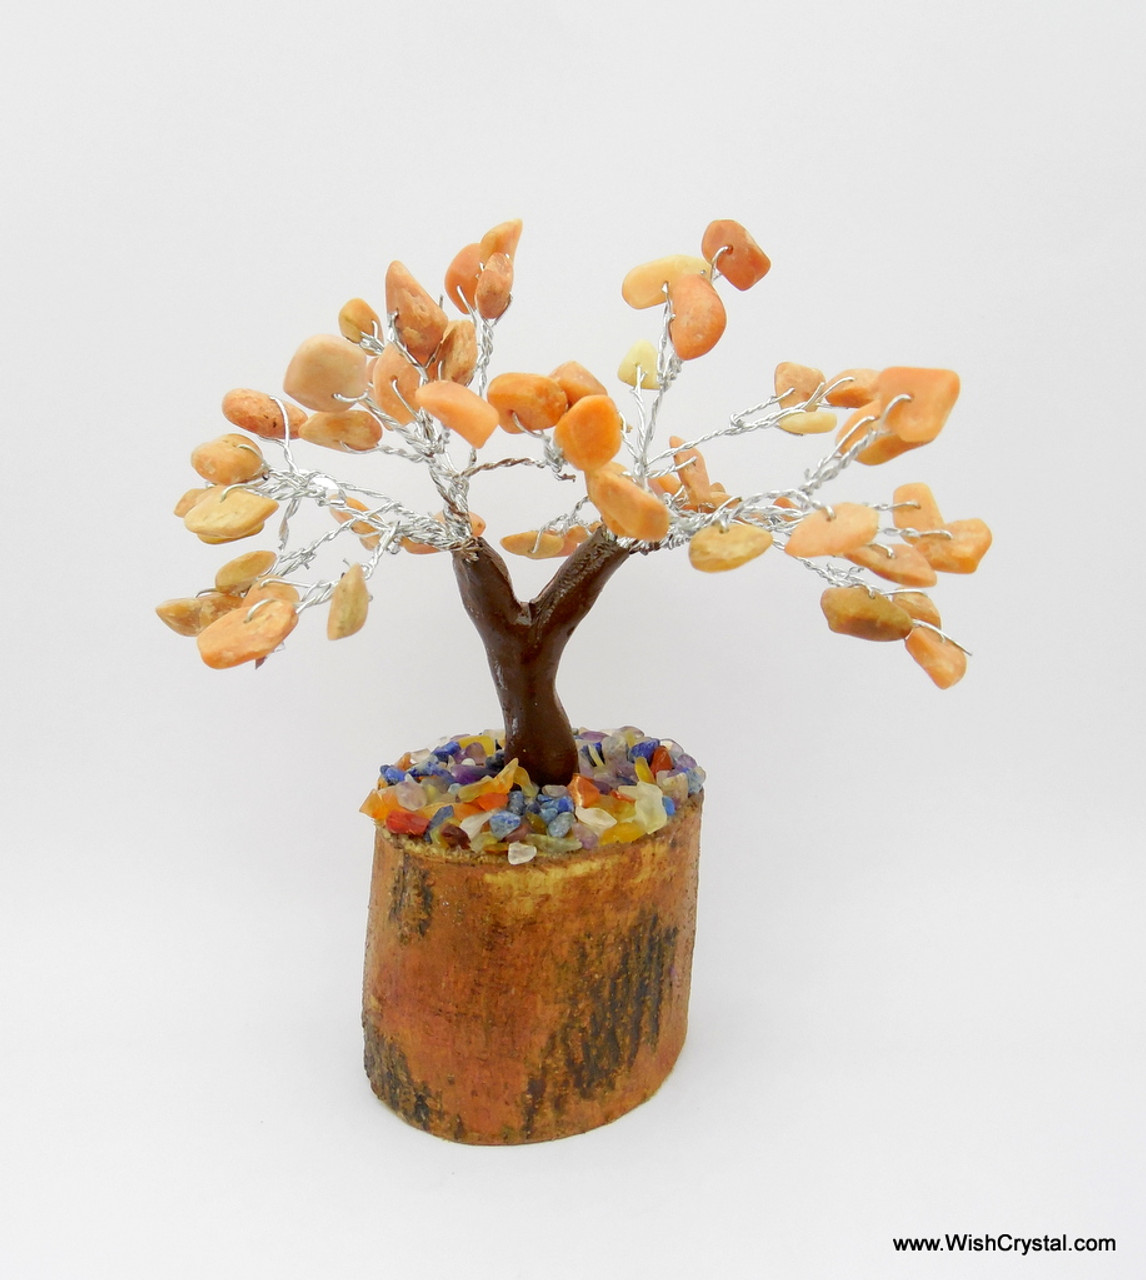 Metaphysical Wholesale Supplier Of Orange Aventurine Gem Tree Petite Natural Crystal Bonsai Tree 4 Inch In United States